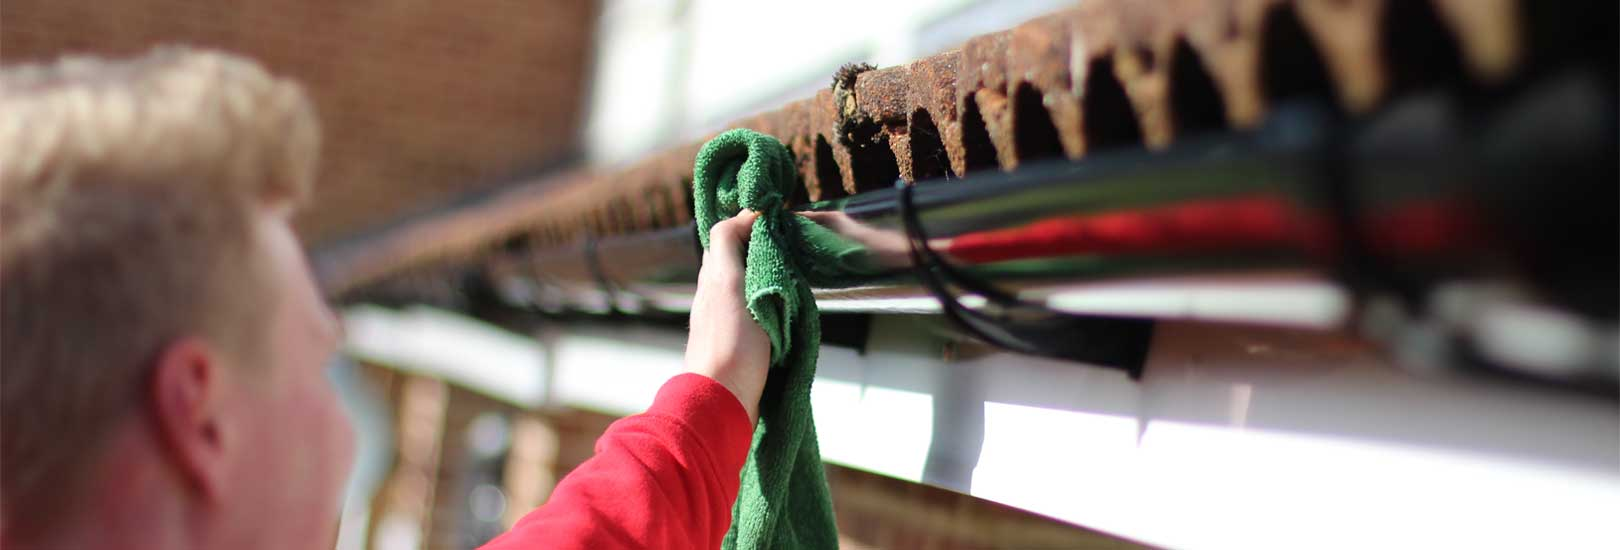 gutter cleaning service Melbourne